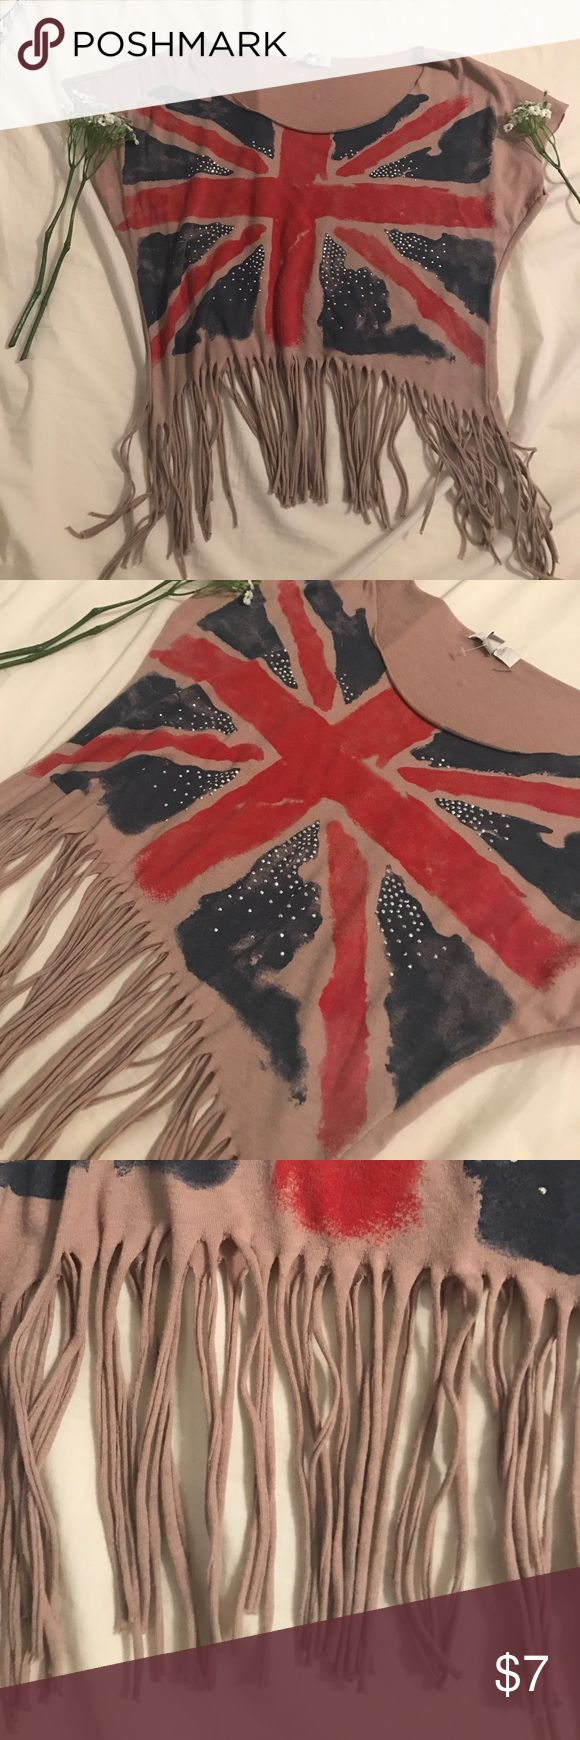 Union Jack Crop Top Tan Crop Top with Union Jack flag print on front! Also has some small rhinestone embellishments. Frays along bottom and scoop neck. Condition is like new! delia's Tops Crop Tops